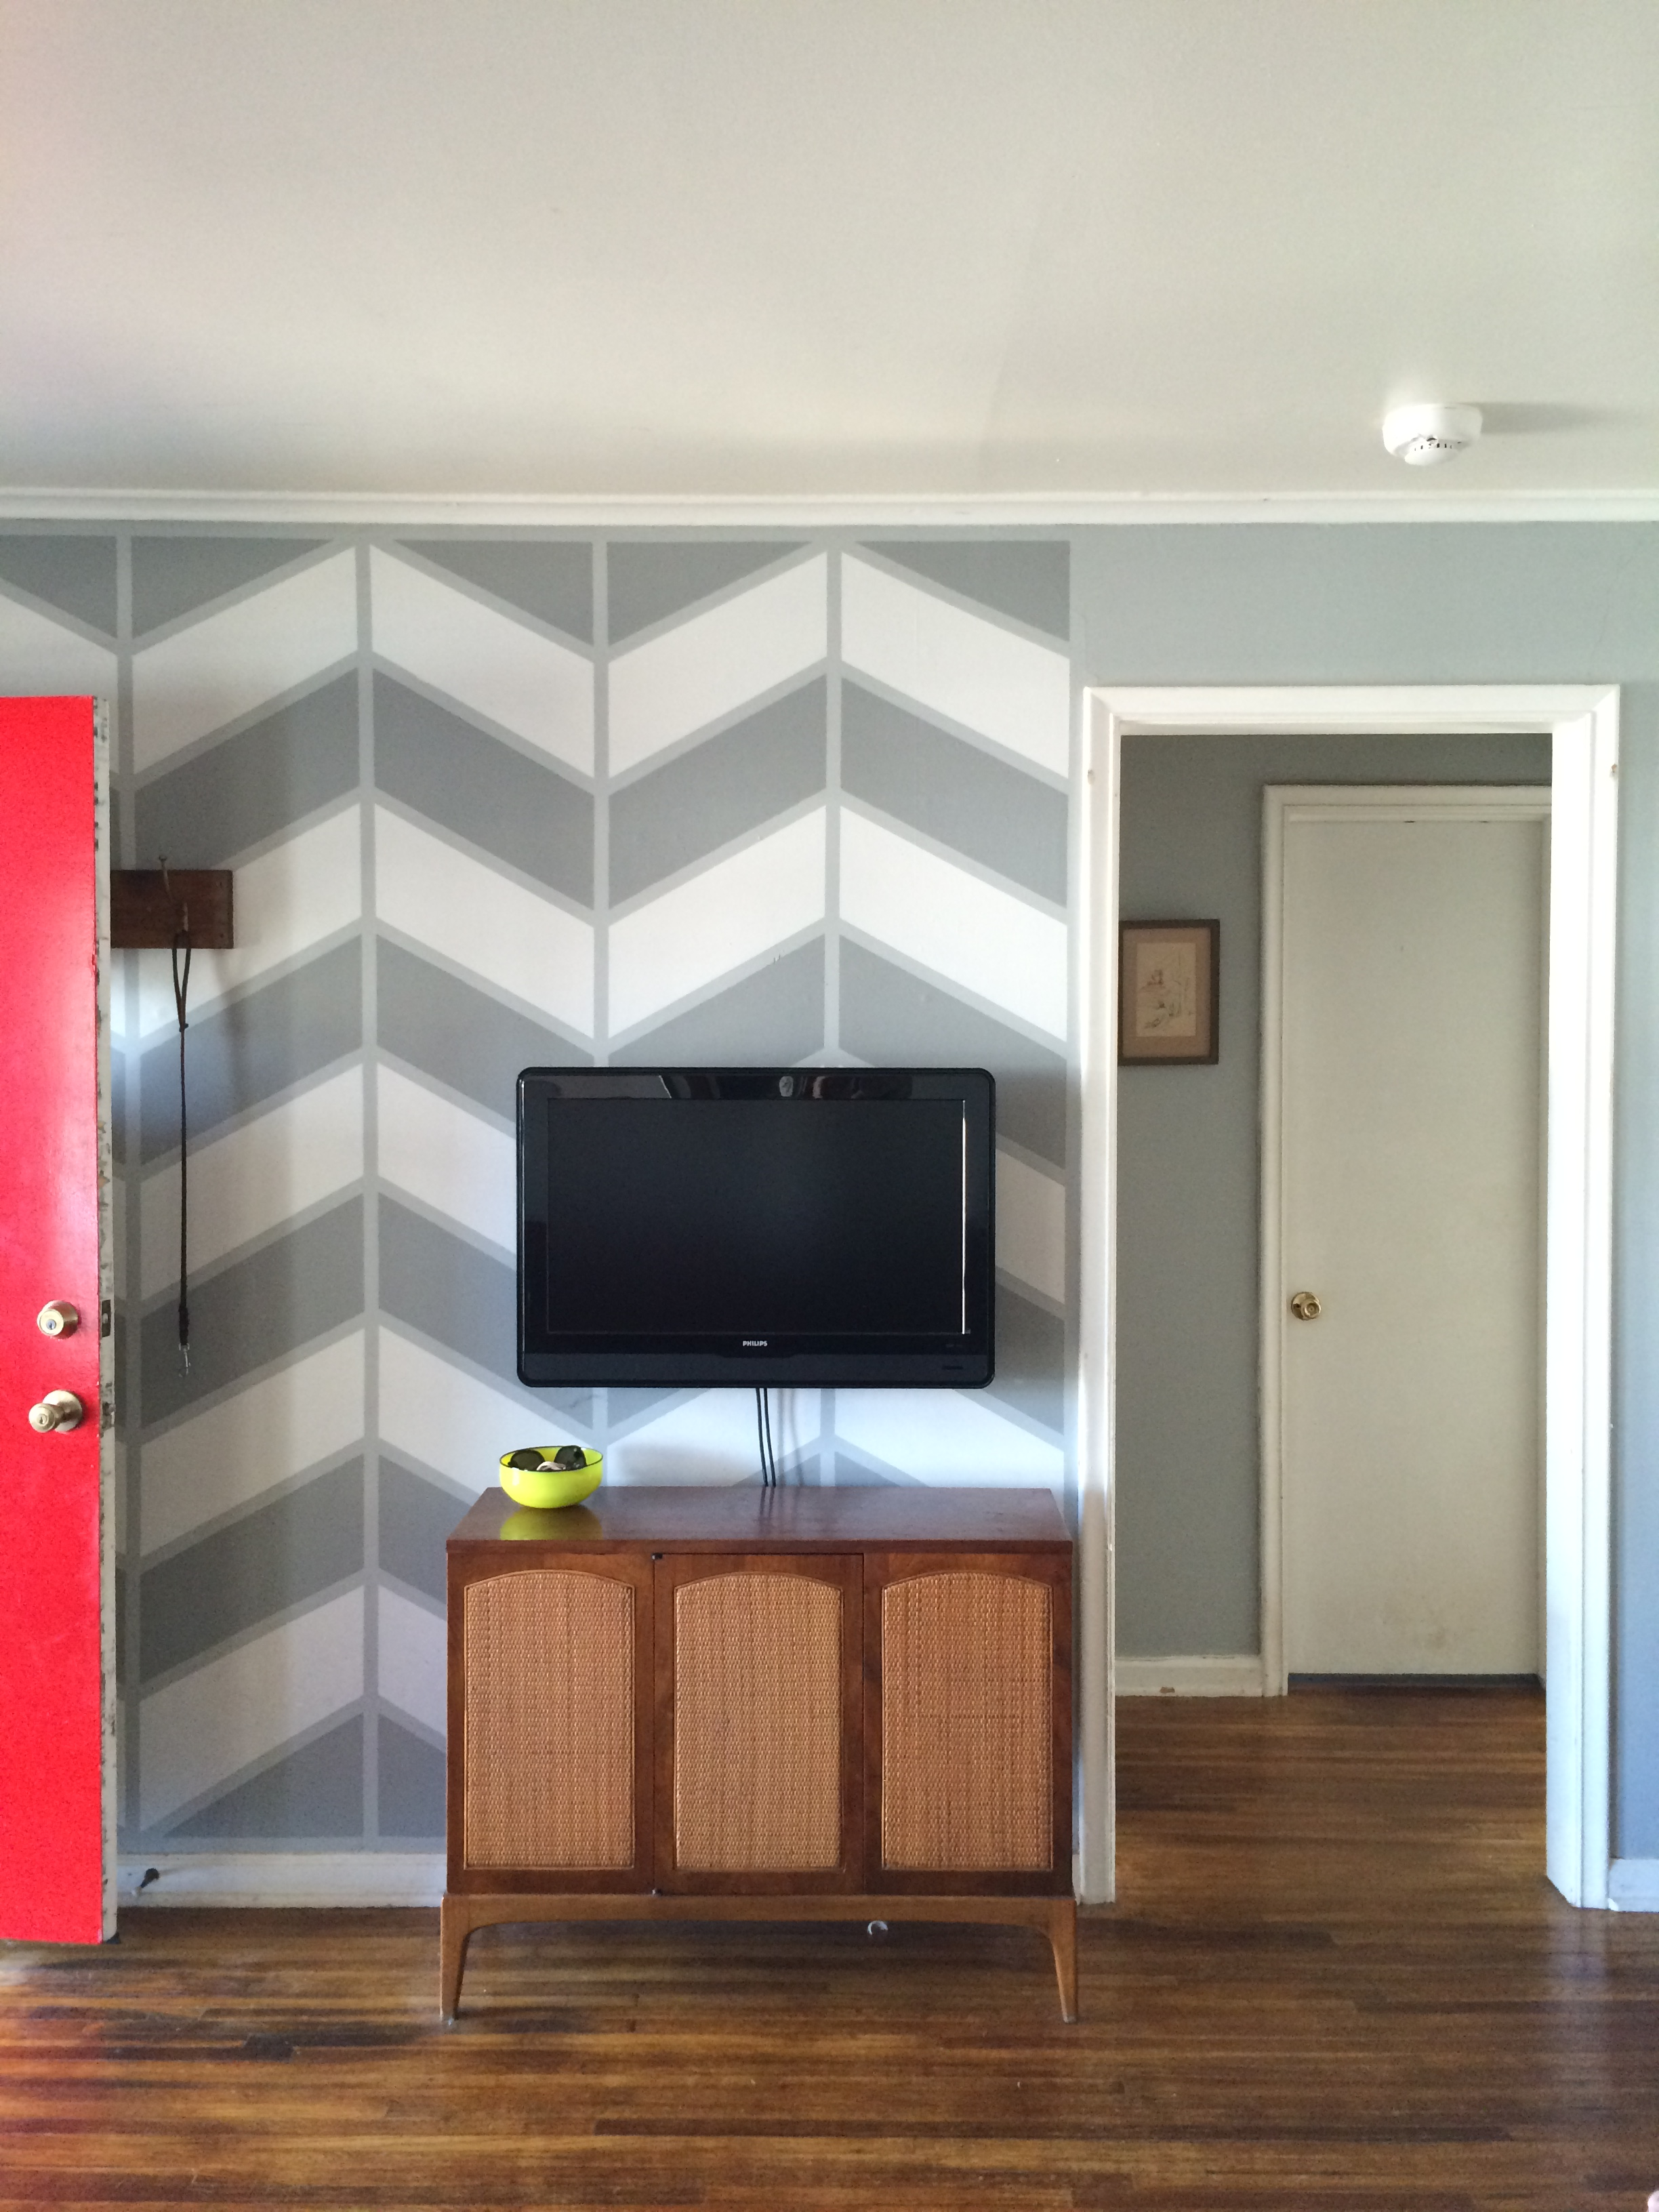 See how happy that wall is?  Making a statement decorating decision speaks over daily necessities like a television.